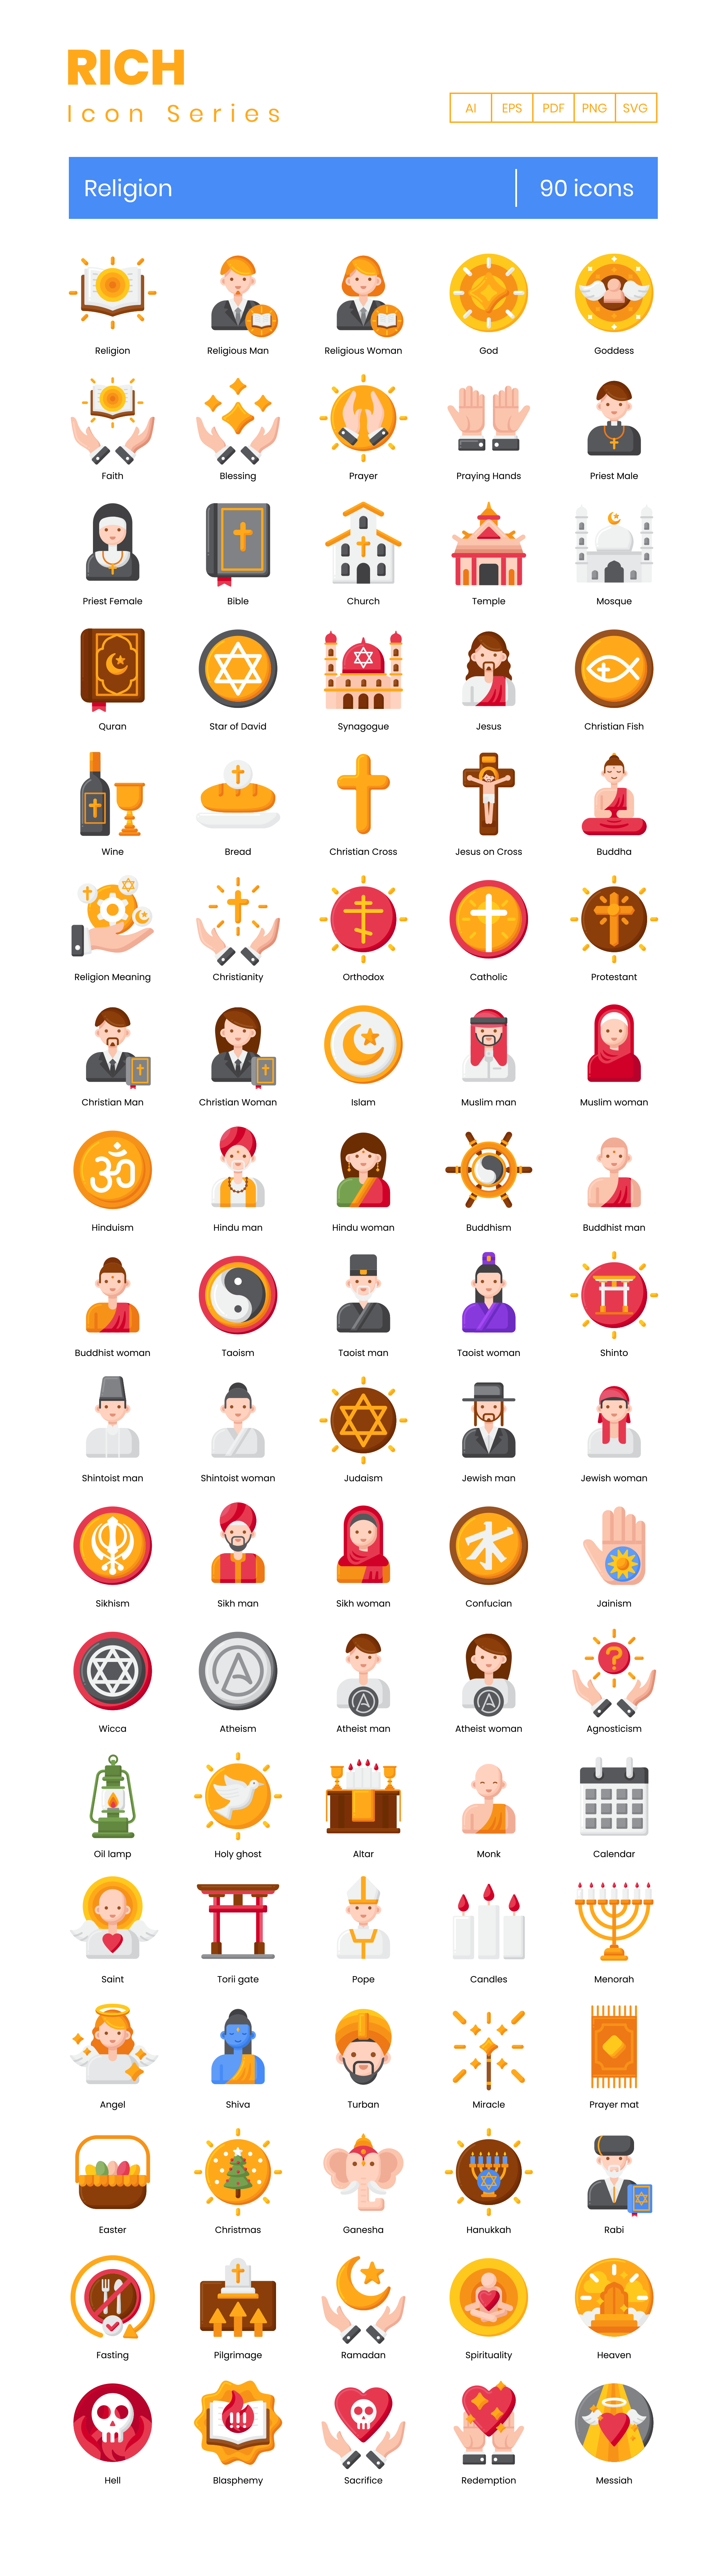 Religion Vector Icons Preview Image